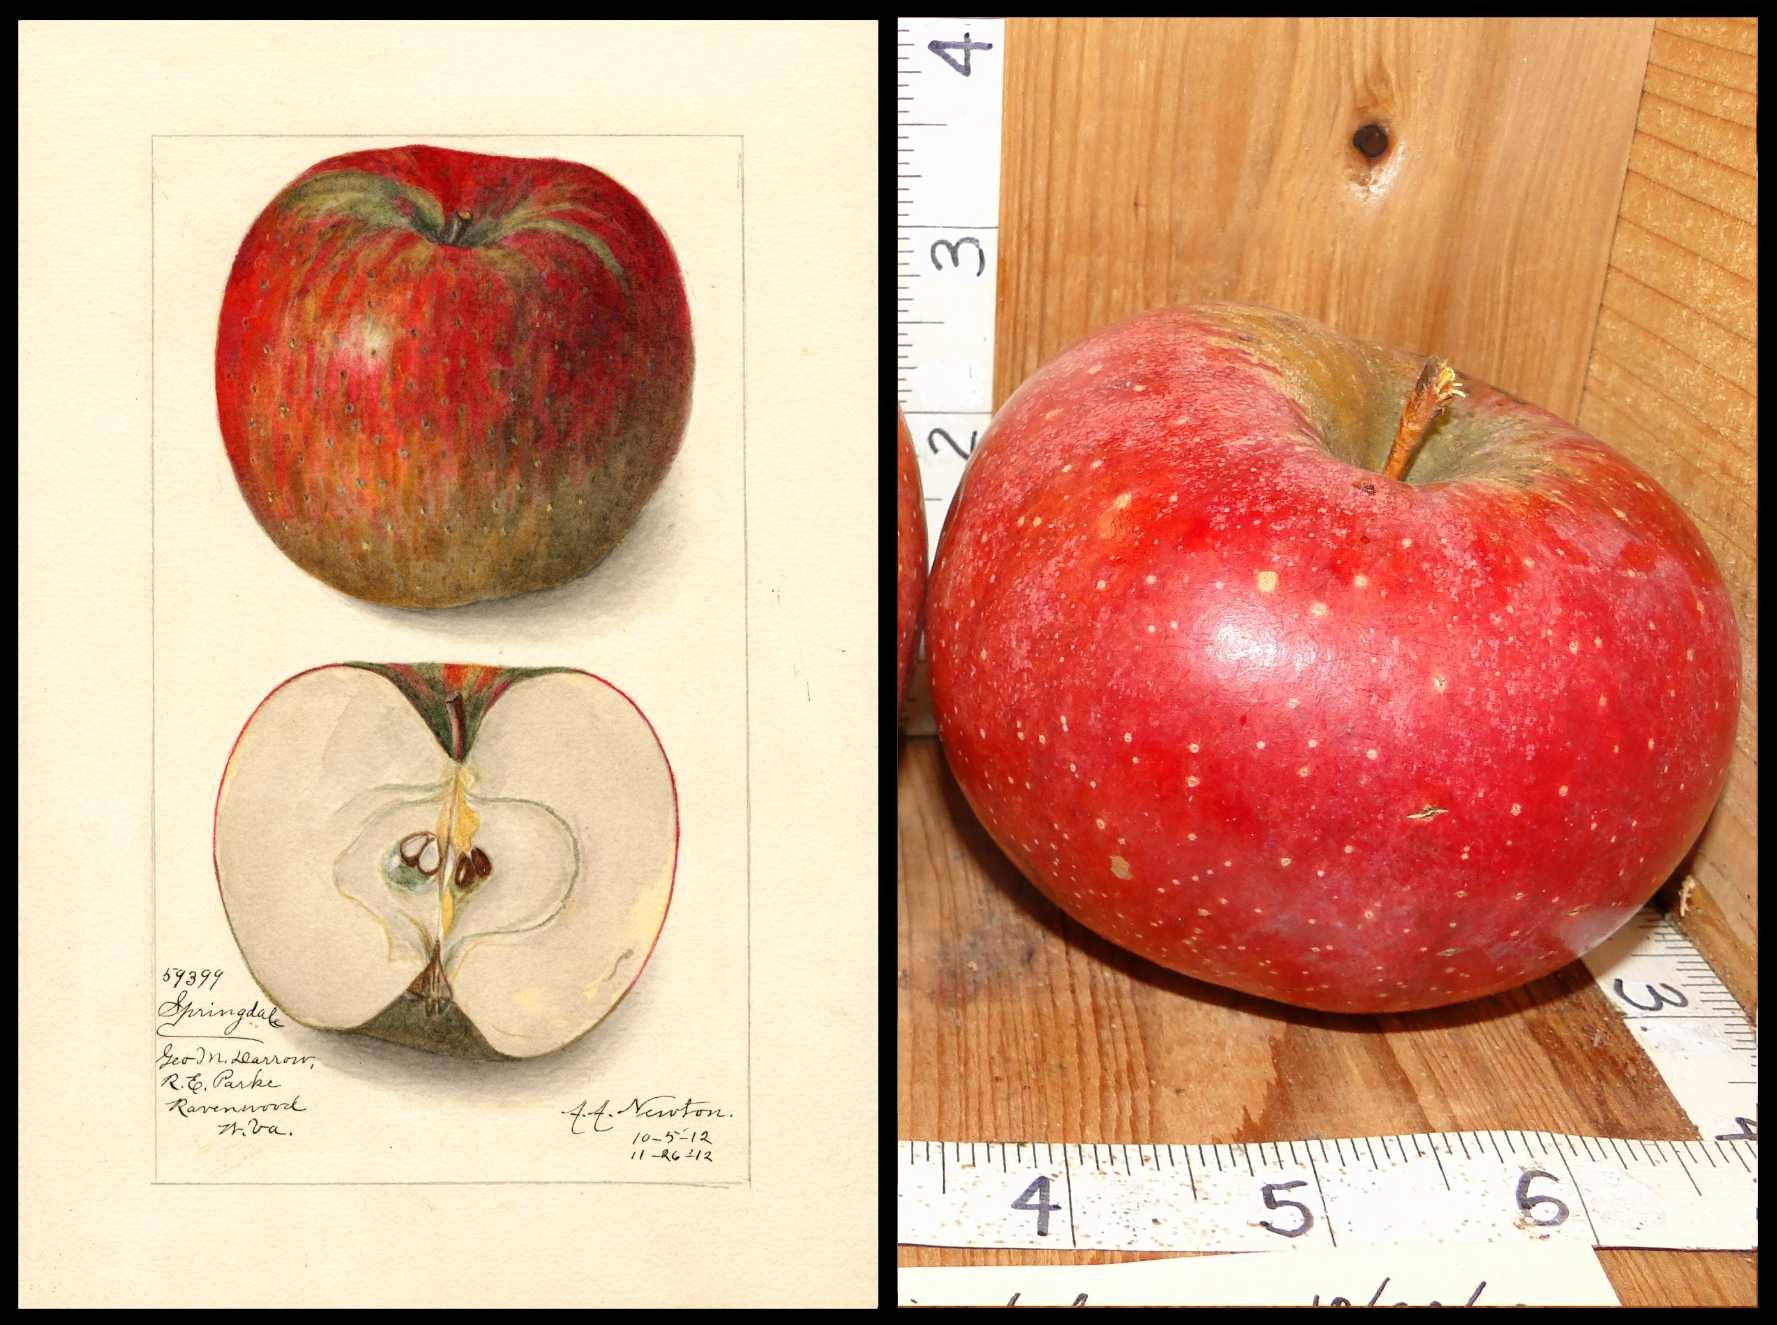 red apple with small to medium sized white dots